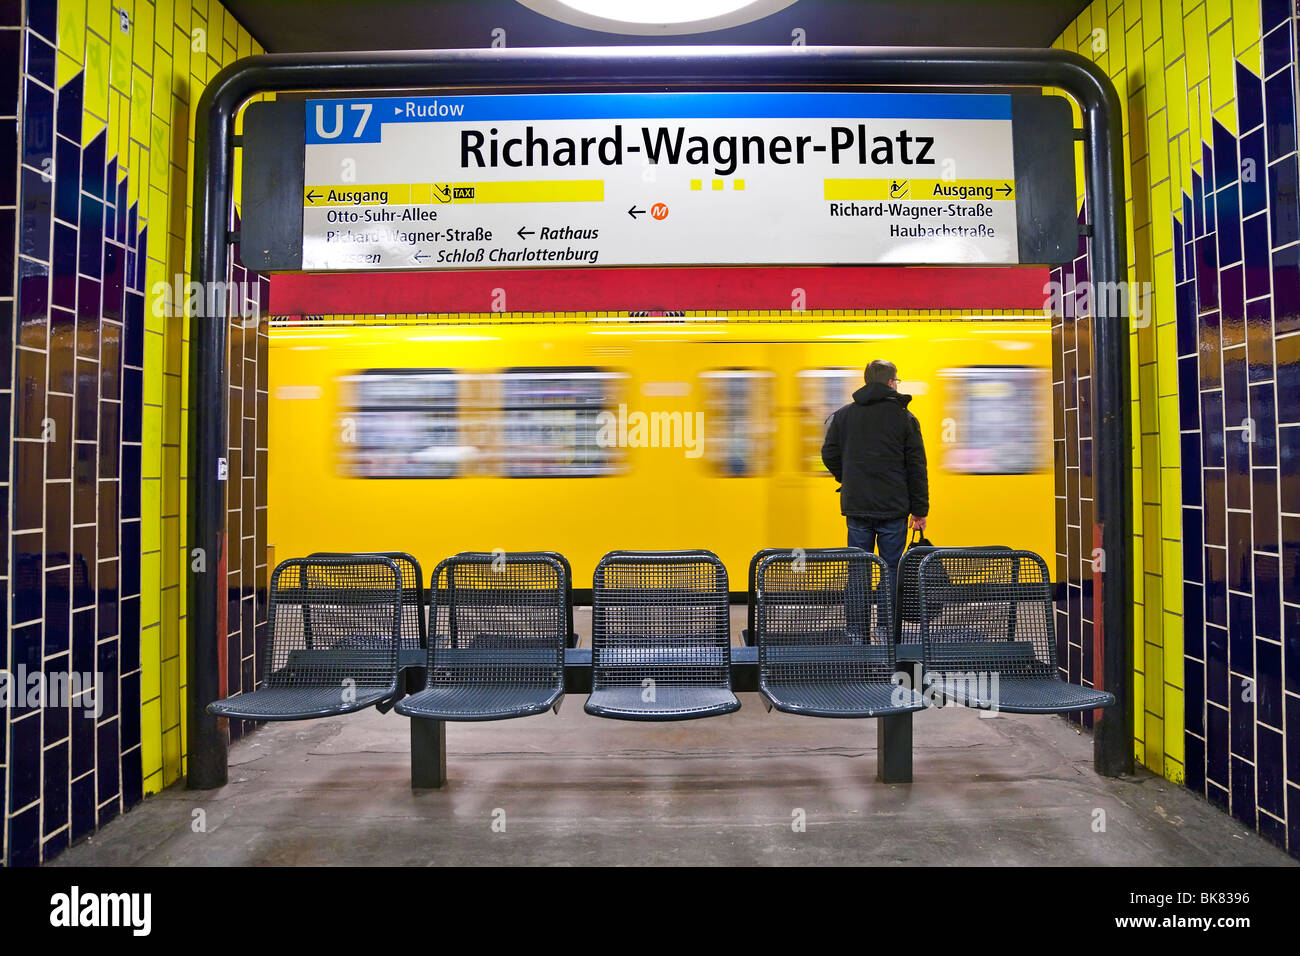 Europe, Germany, Berlin, modern subway station - moving train pulling into the station - Stock Image